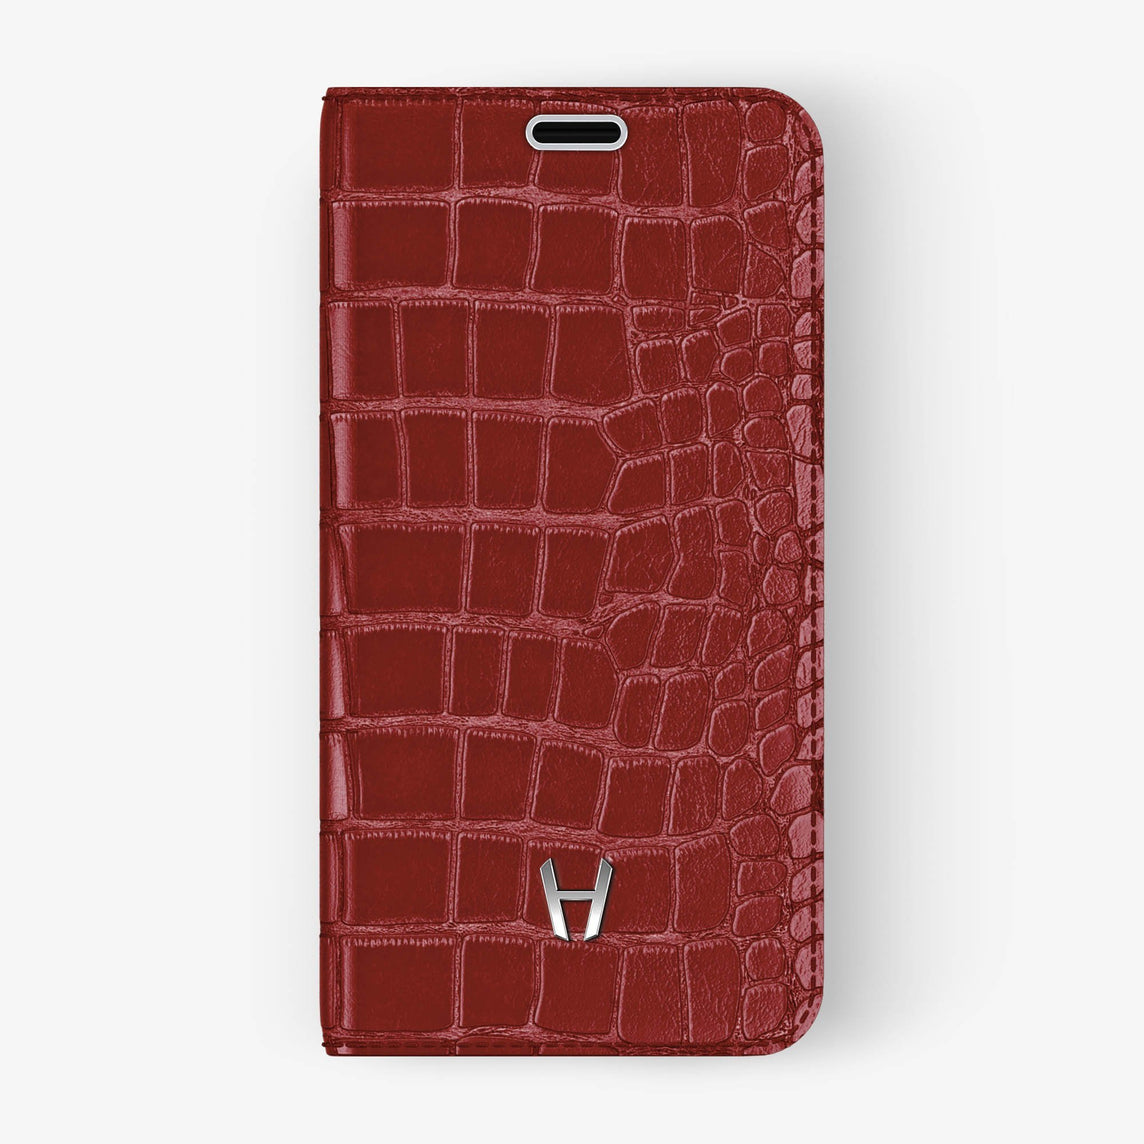 Red Alligator iPhone Folio Case for iPhone X finishing stainless steel - Hadoro Luxury Cases